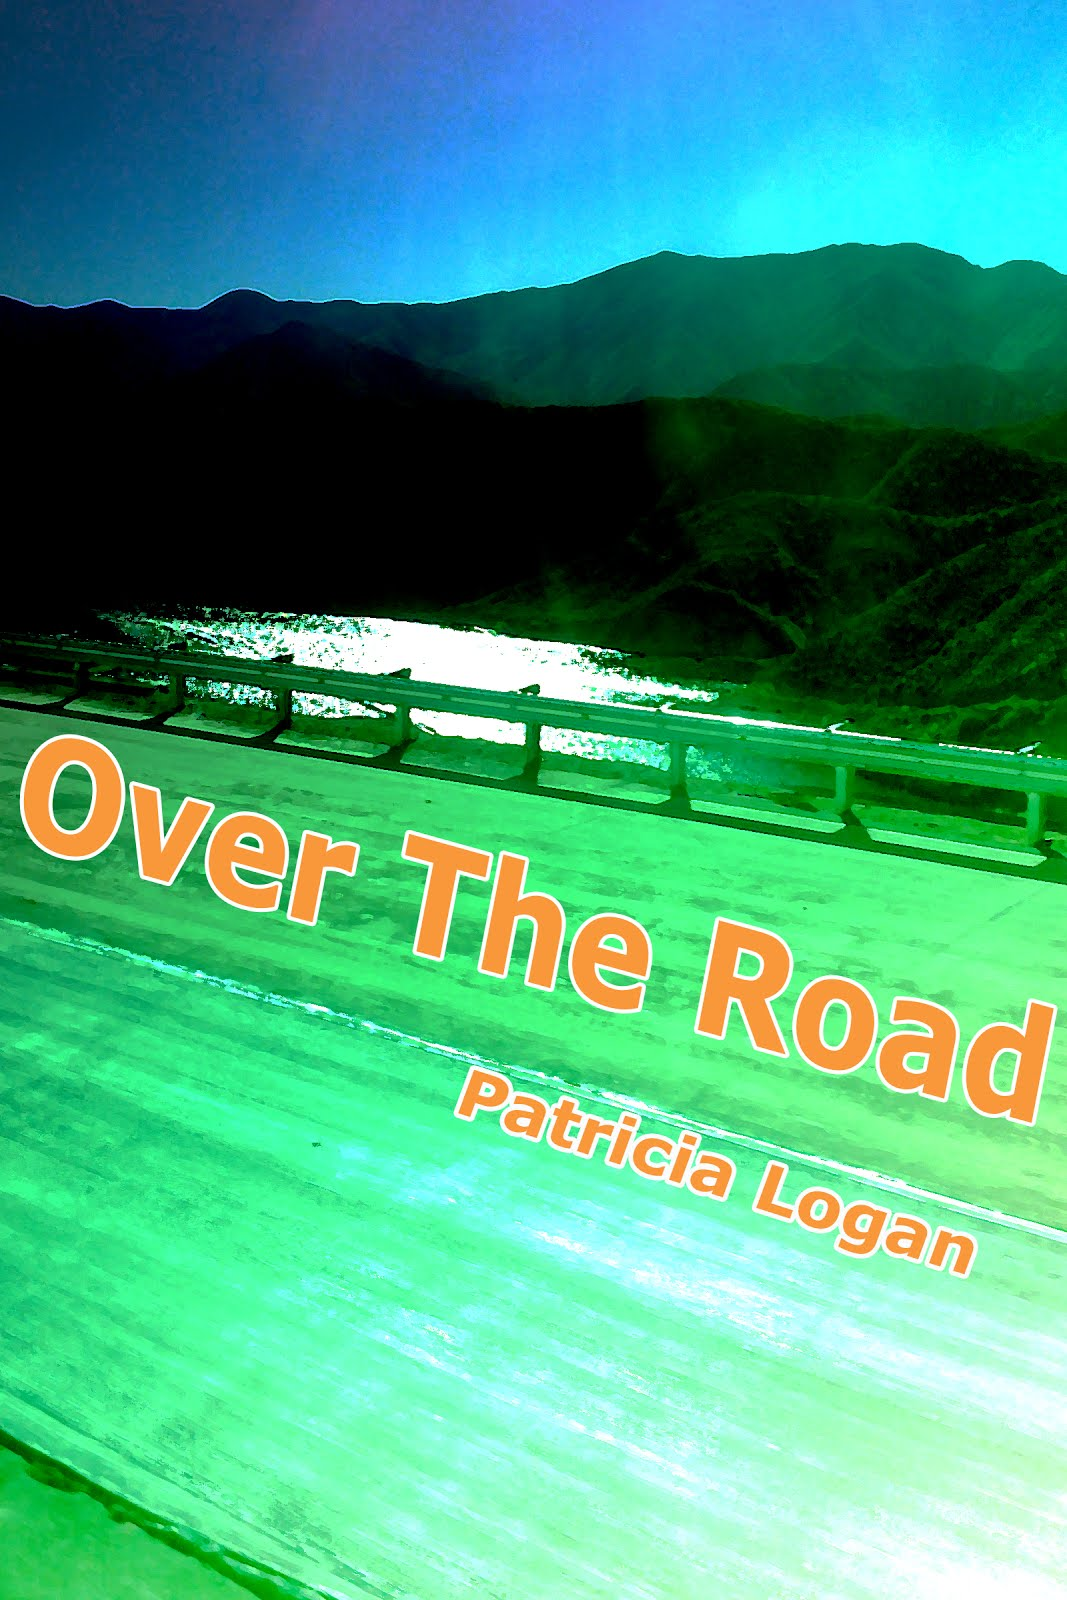 Patricia Logan Books and More: A cover, a blurb, and an